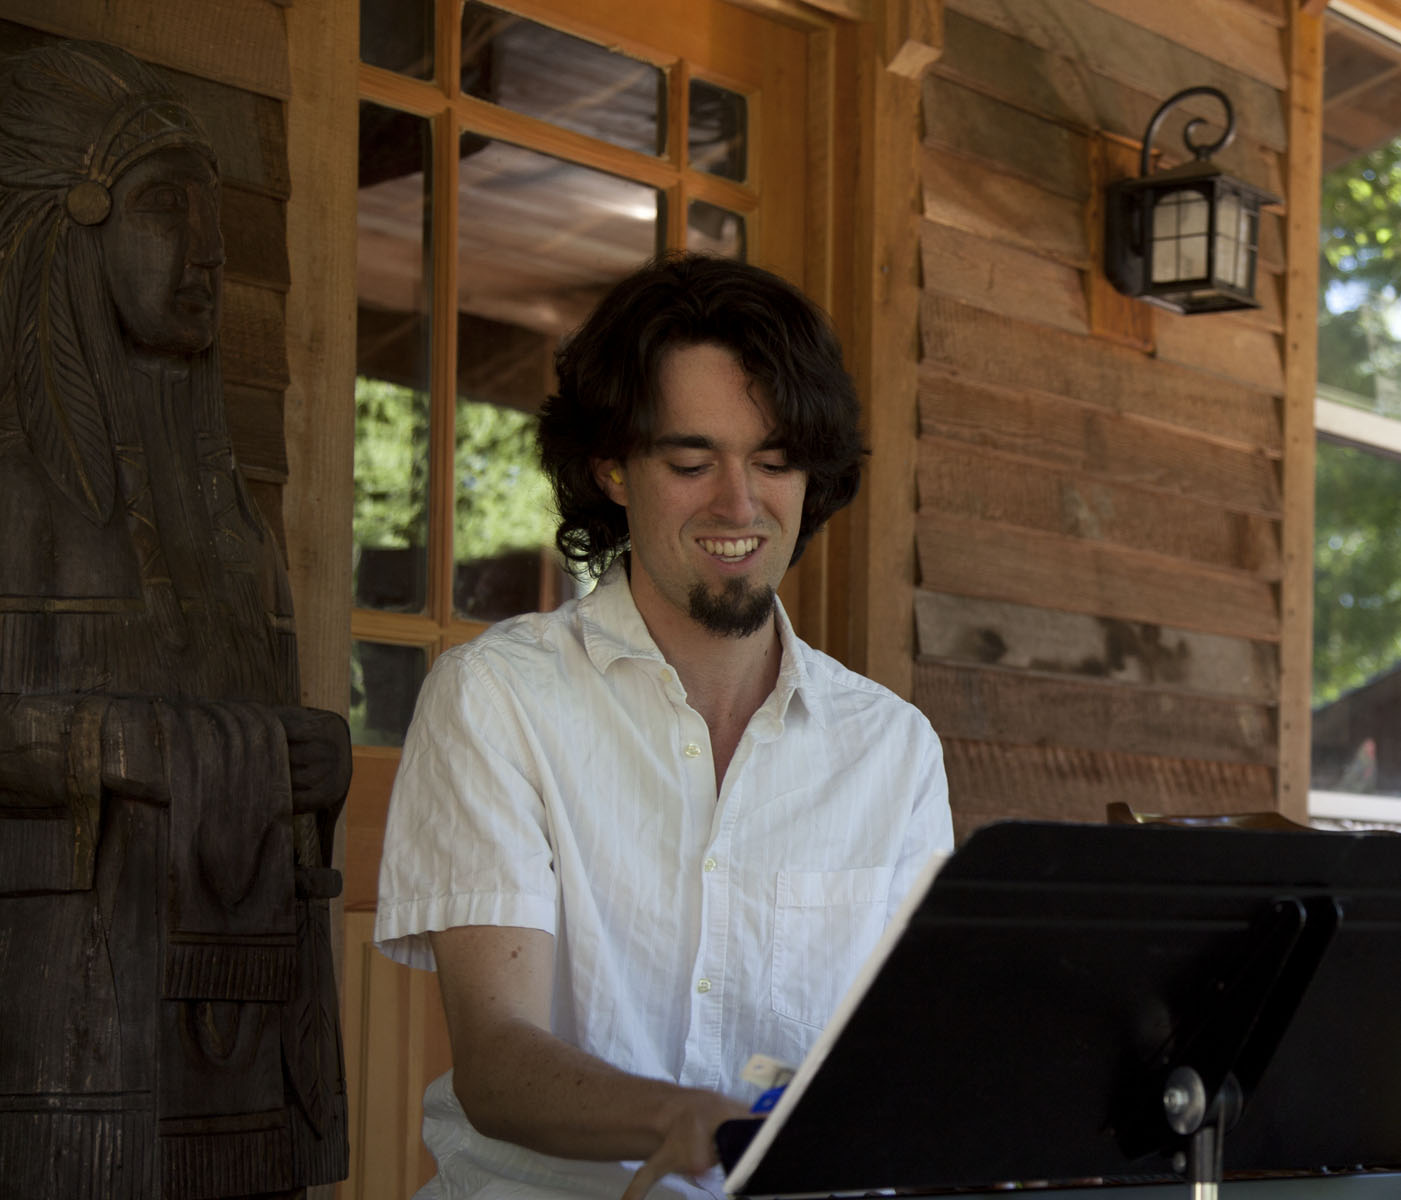 justin-nelson-pianist-jazz-swing-live-music-fundraising-arts-council.jpg